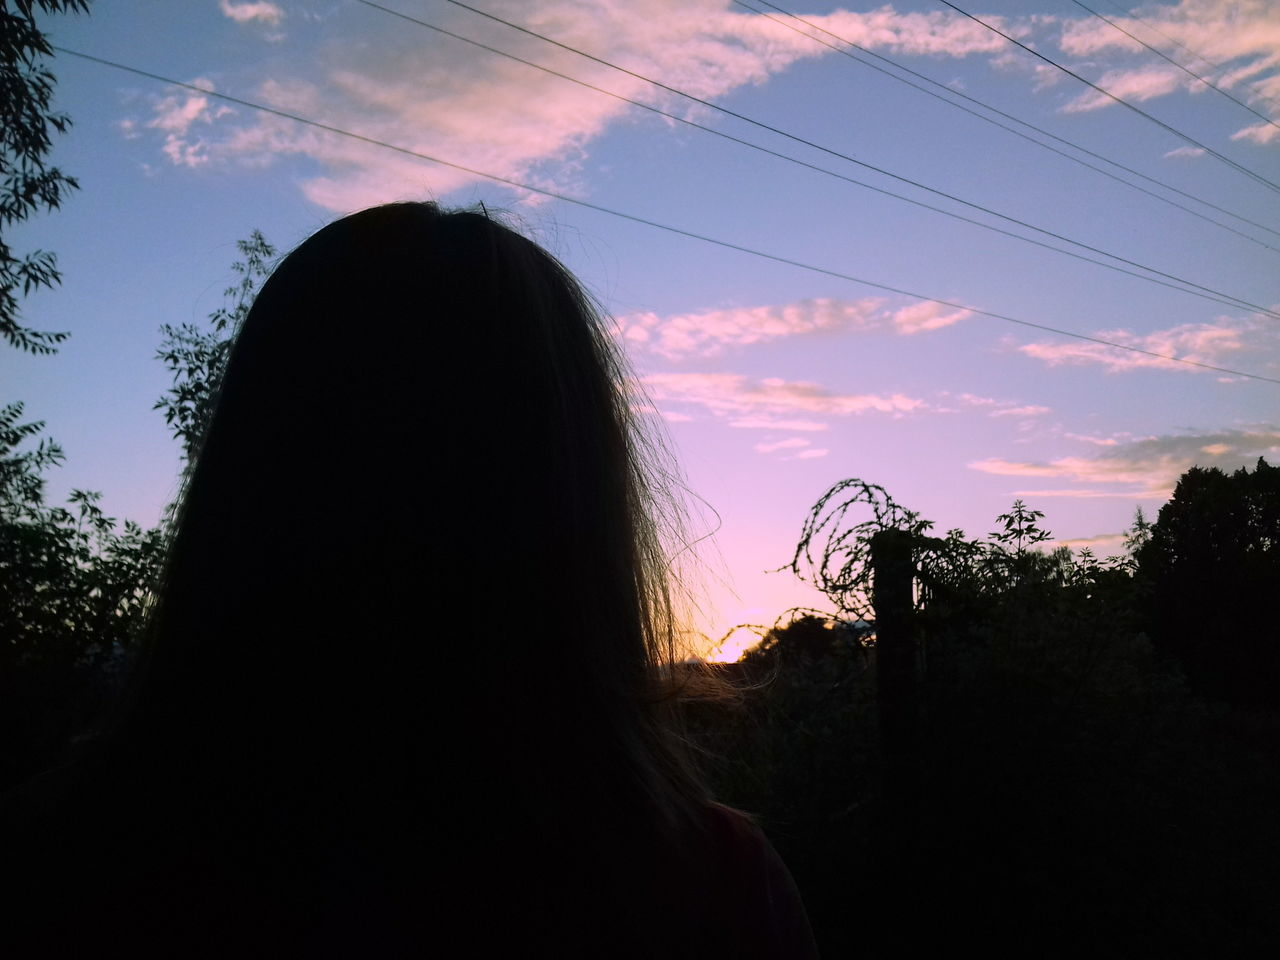 sky, silhouette, nature, tree, outdoors, one person, headshot, sunset, real people, day, people